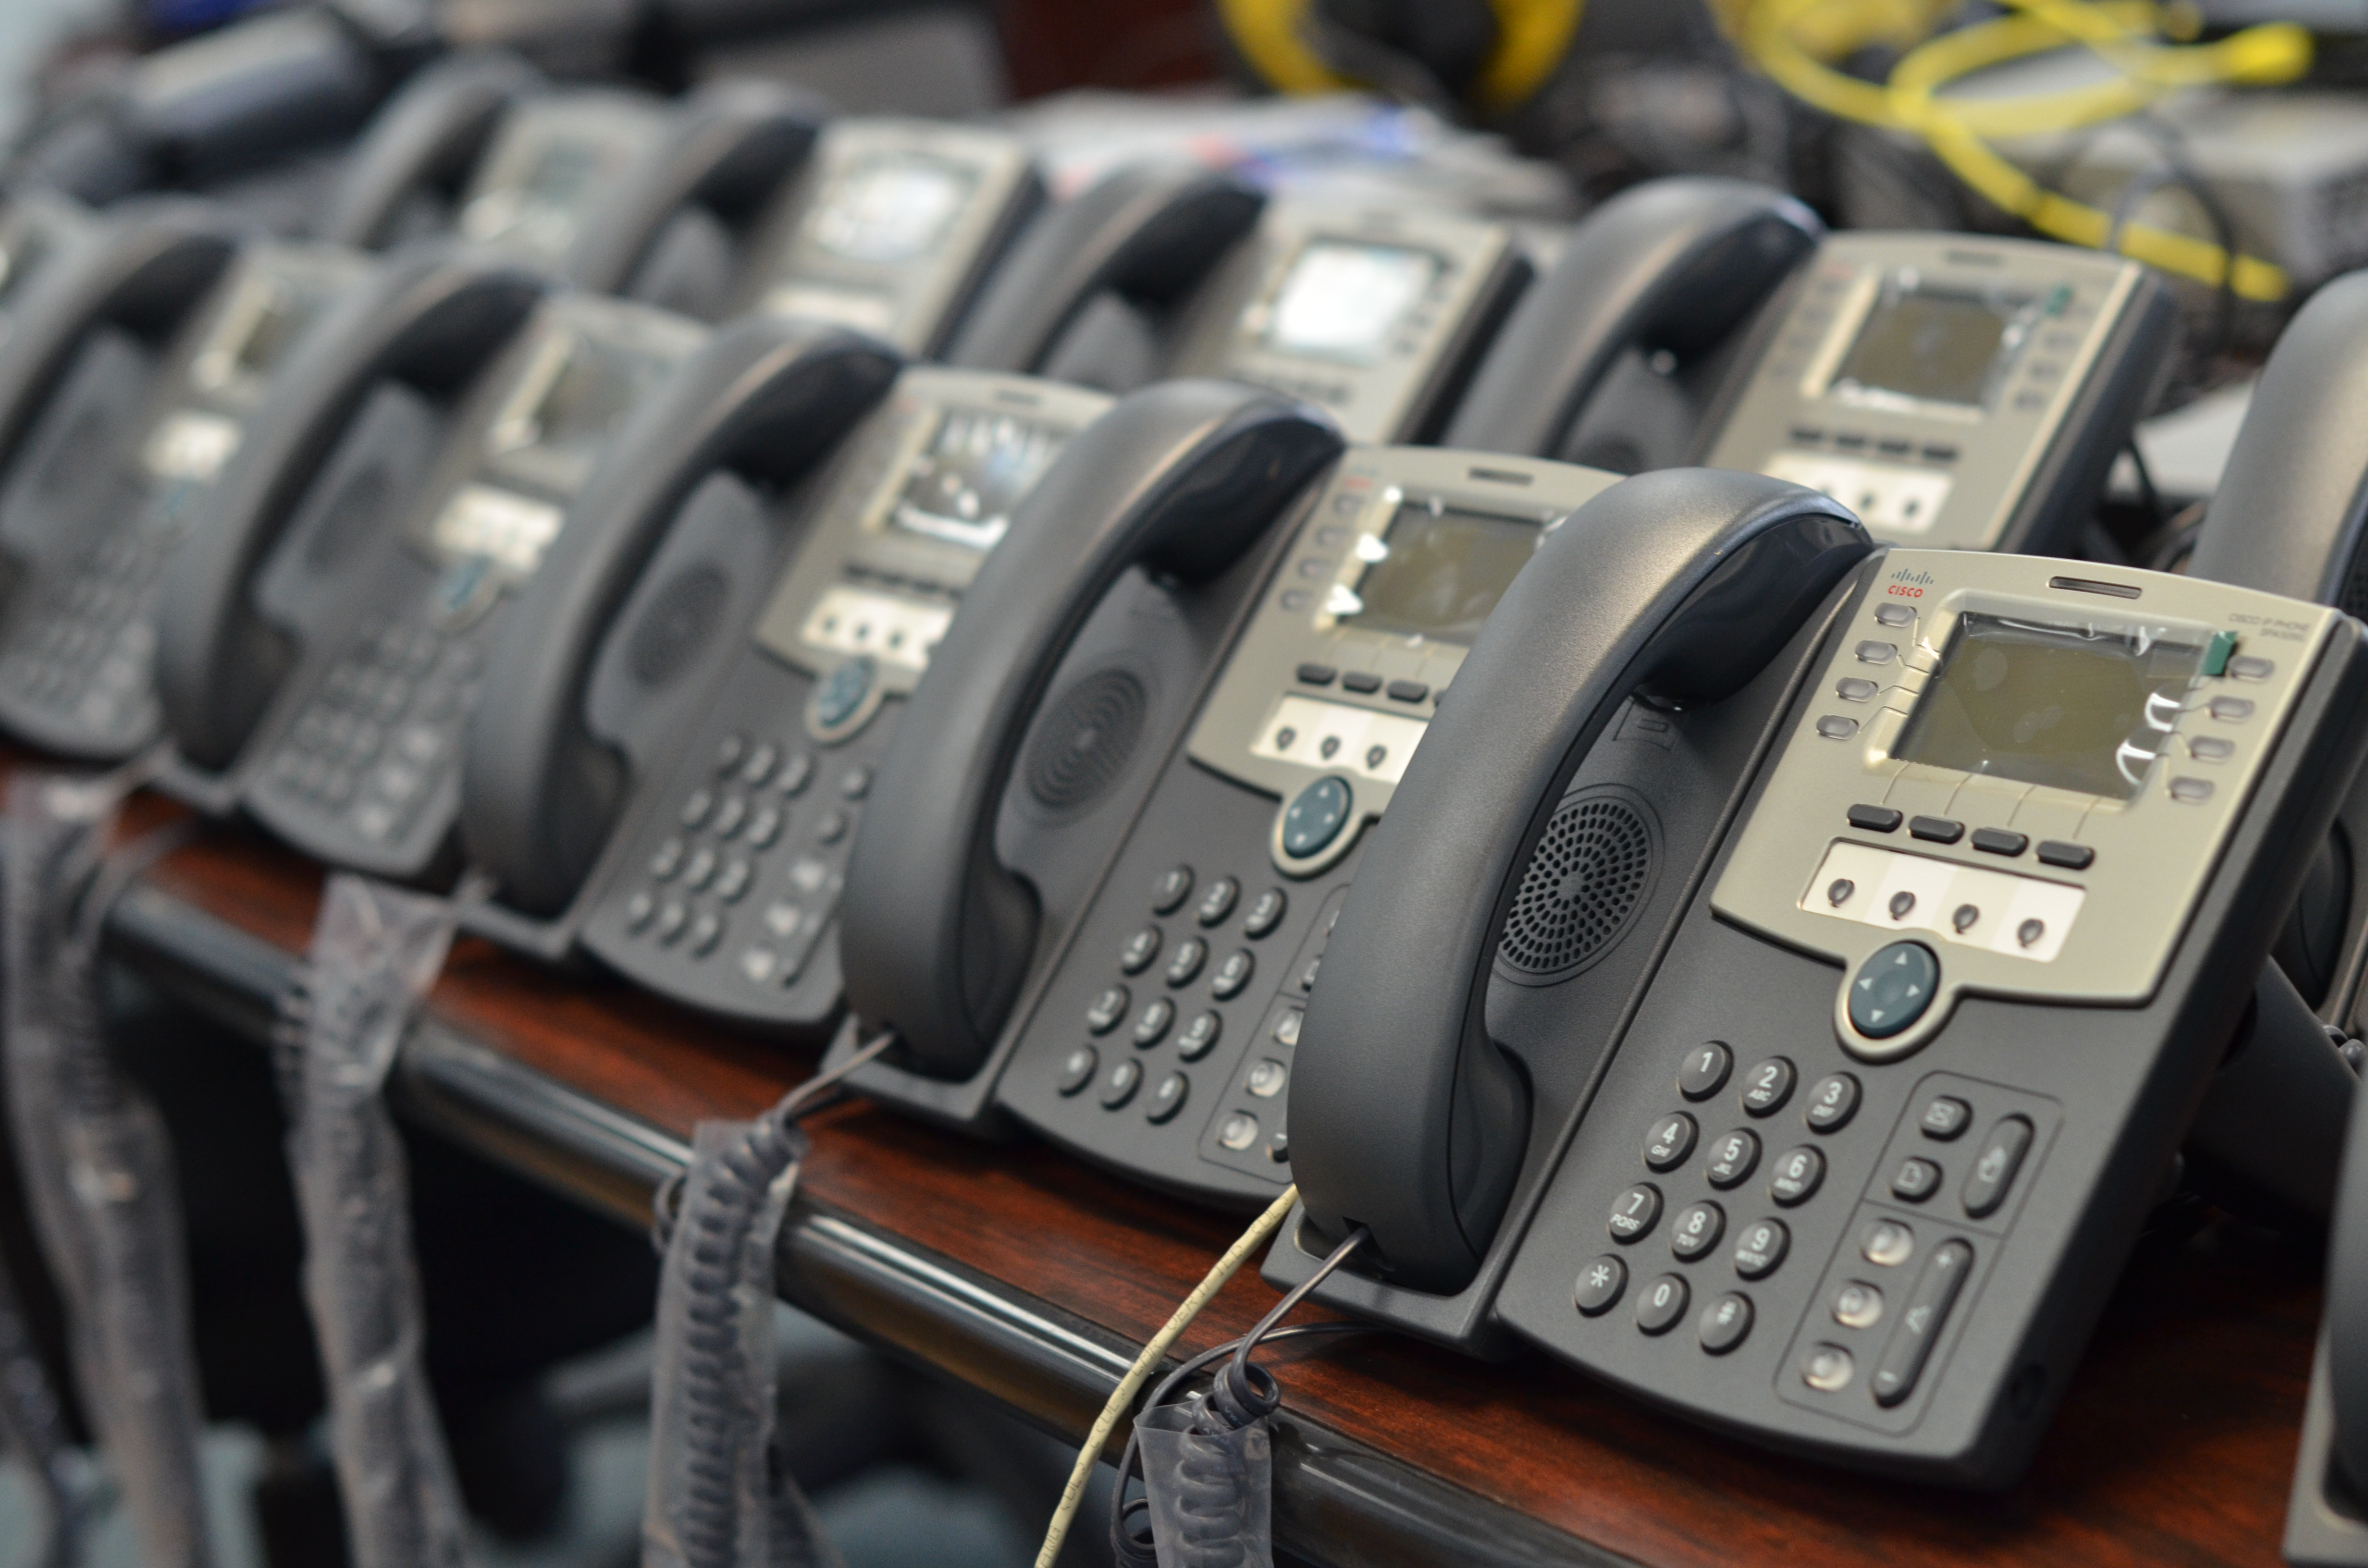 Cisco Phone Voicemail How To Check From Remote Phone